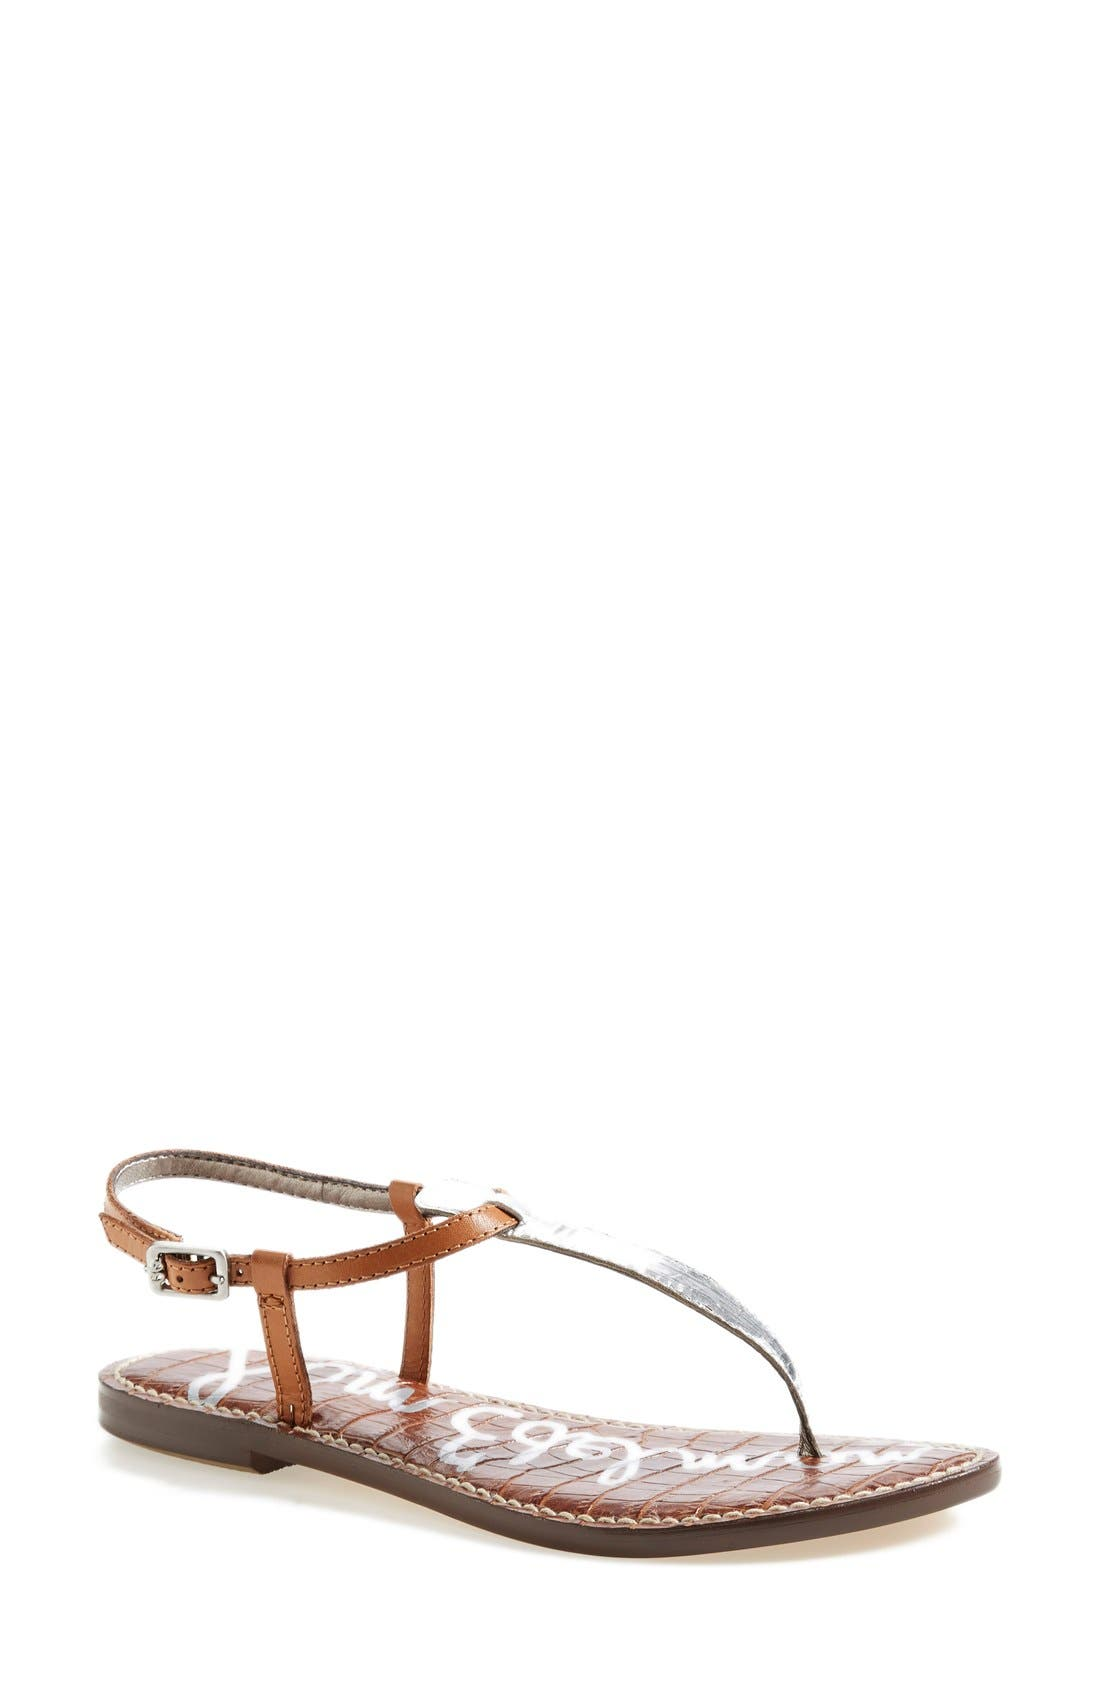 'Gigi' Leather Sandal,                             Main thumbnail 1, color,                             Silver/ Camel Leather